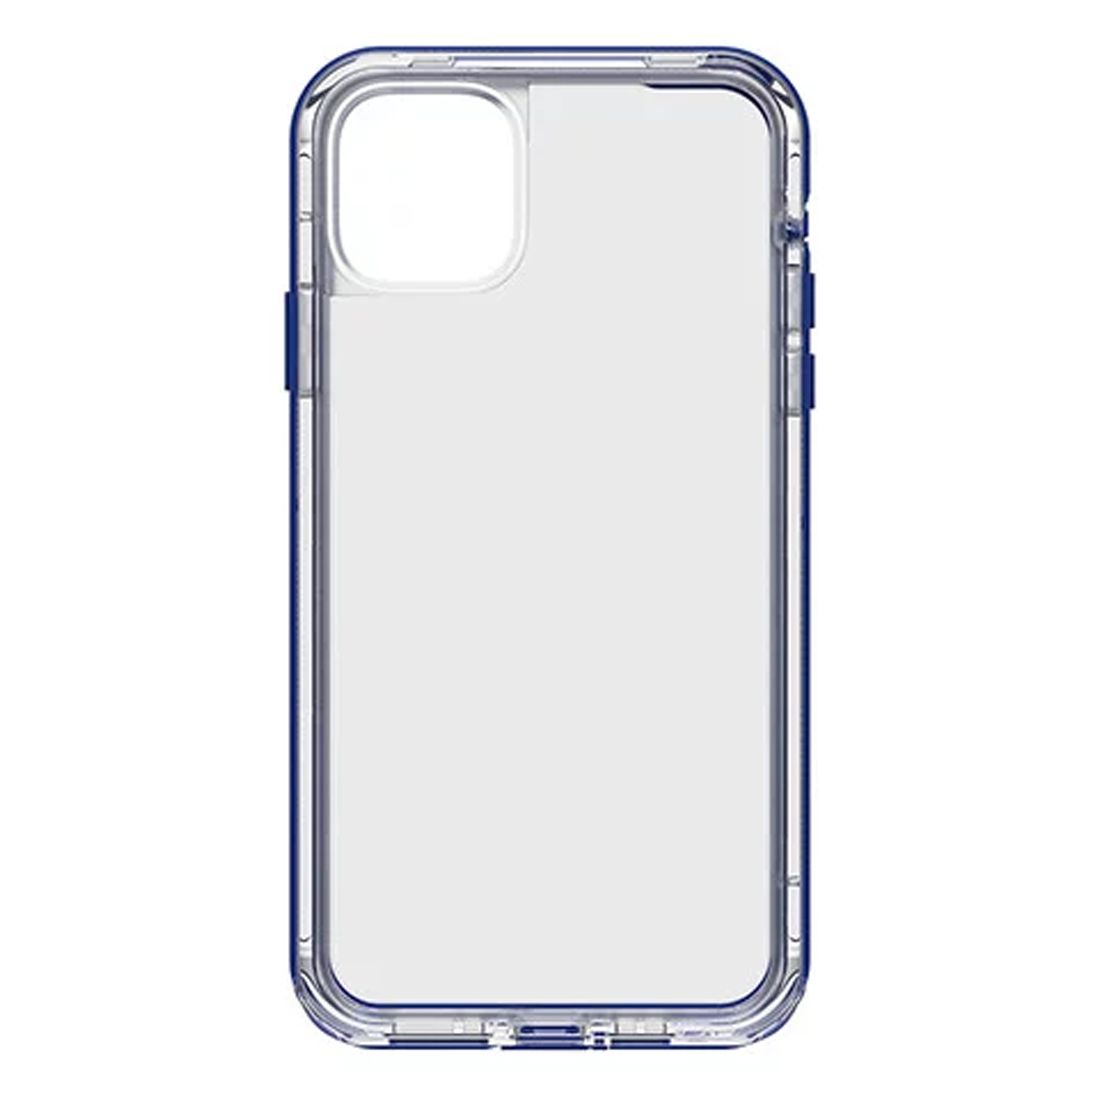 LifeProof Next Case For Apple iPhone 11 Pro Max - Blueberry Frost